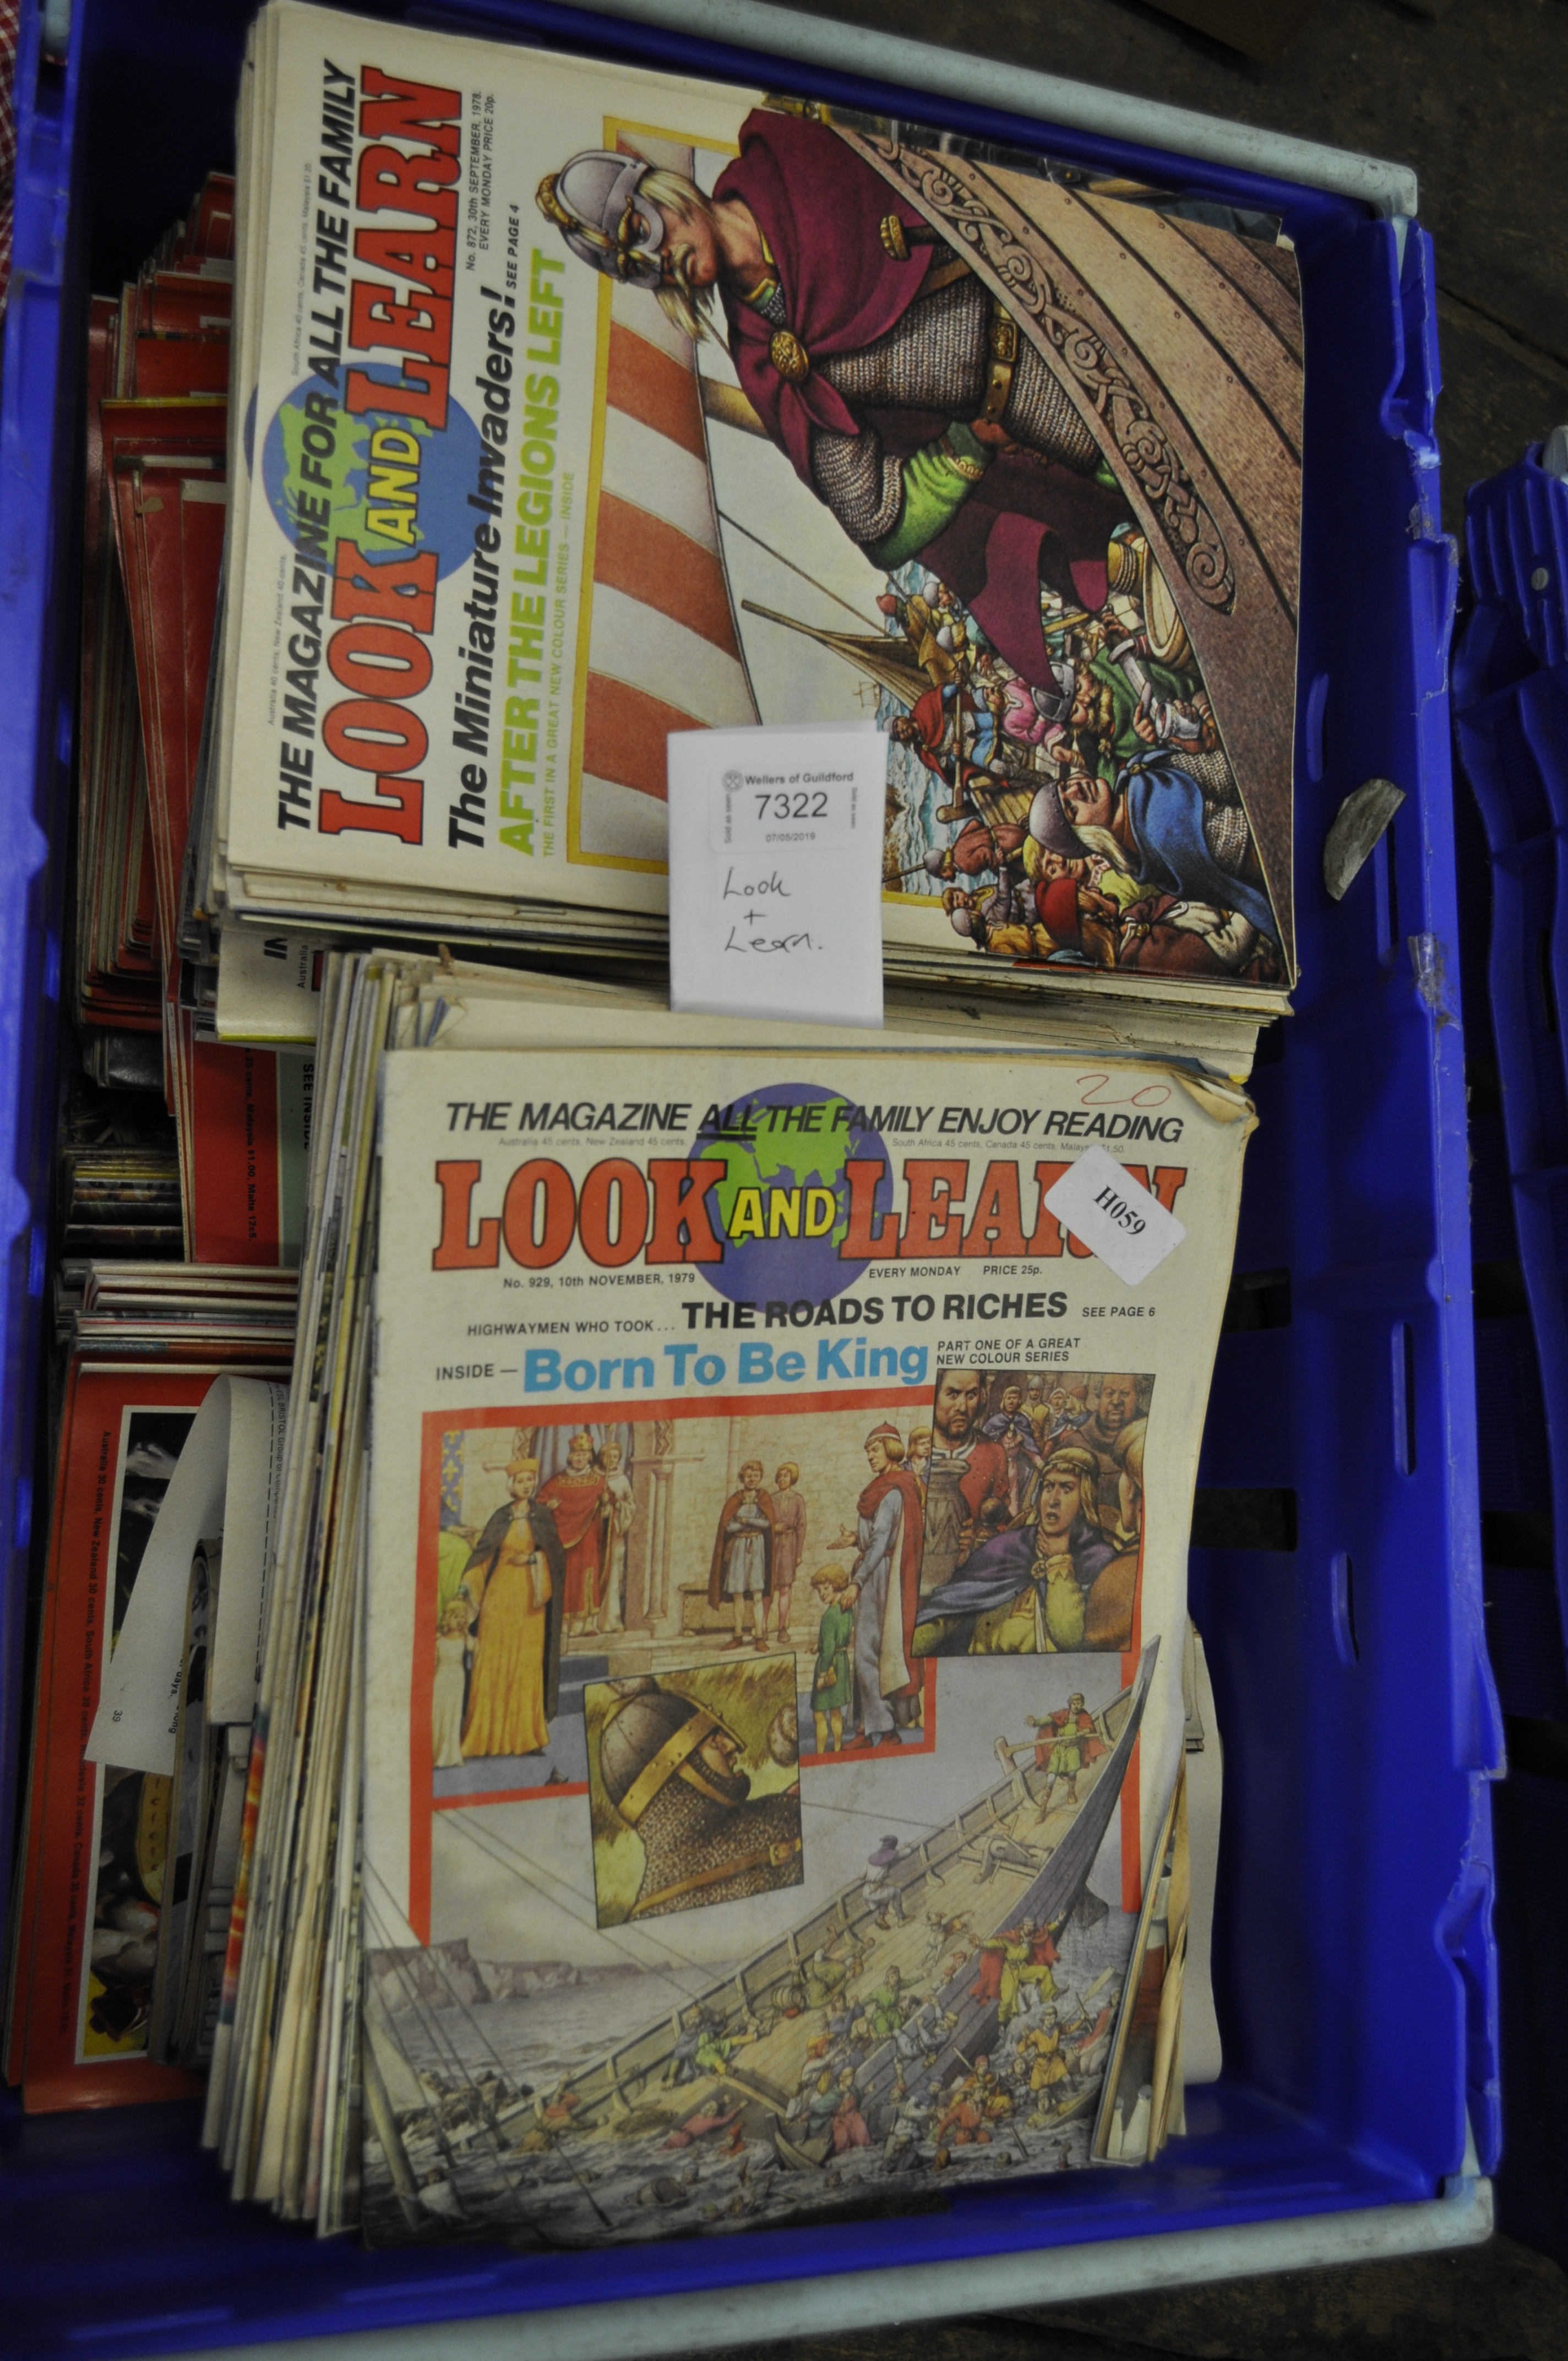 Lot 7322 - A very large collection of Look and Learn magazines from the 1970's